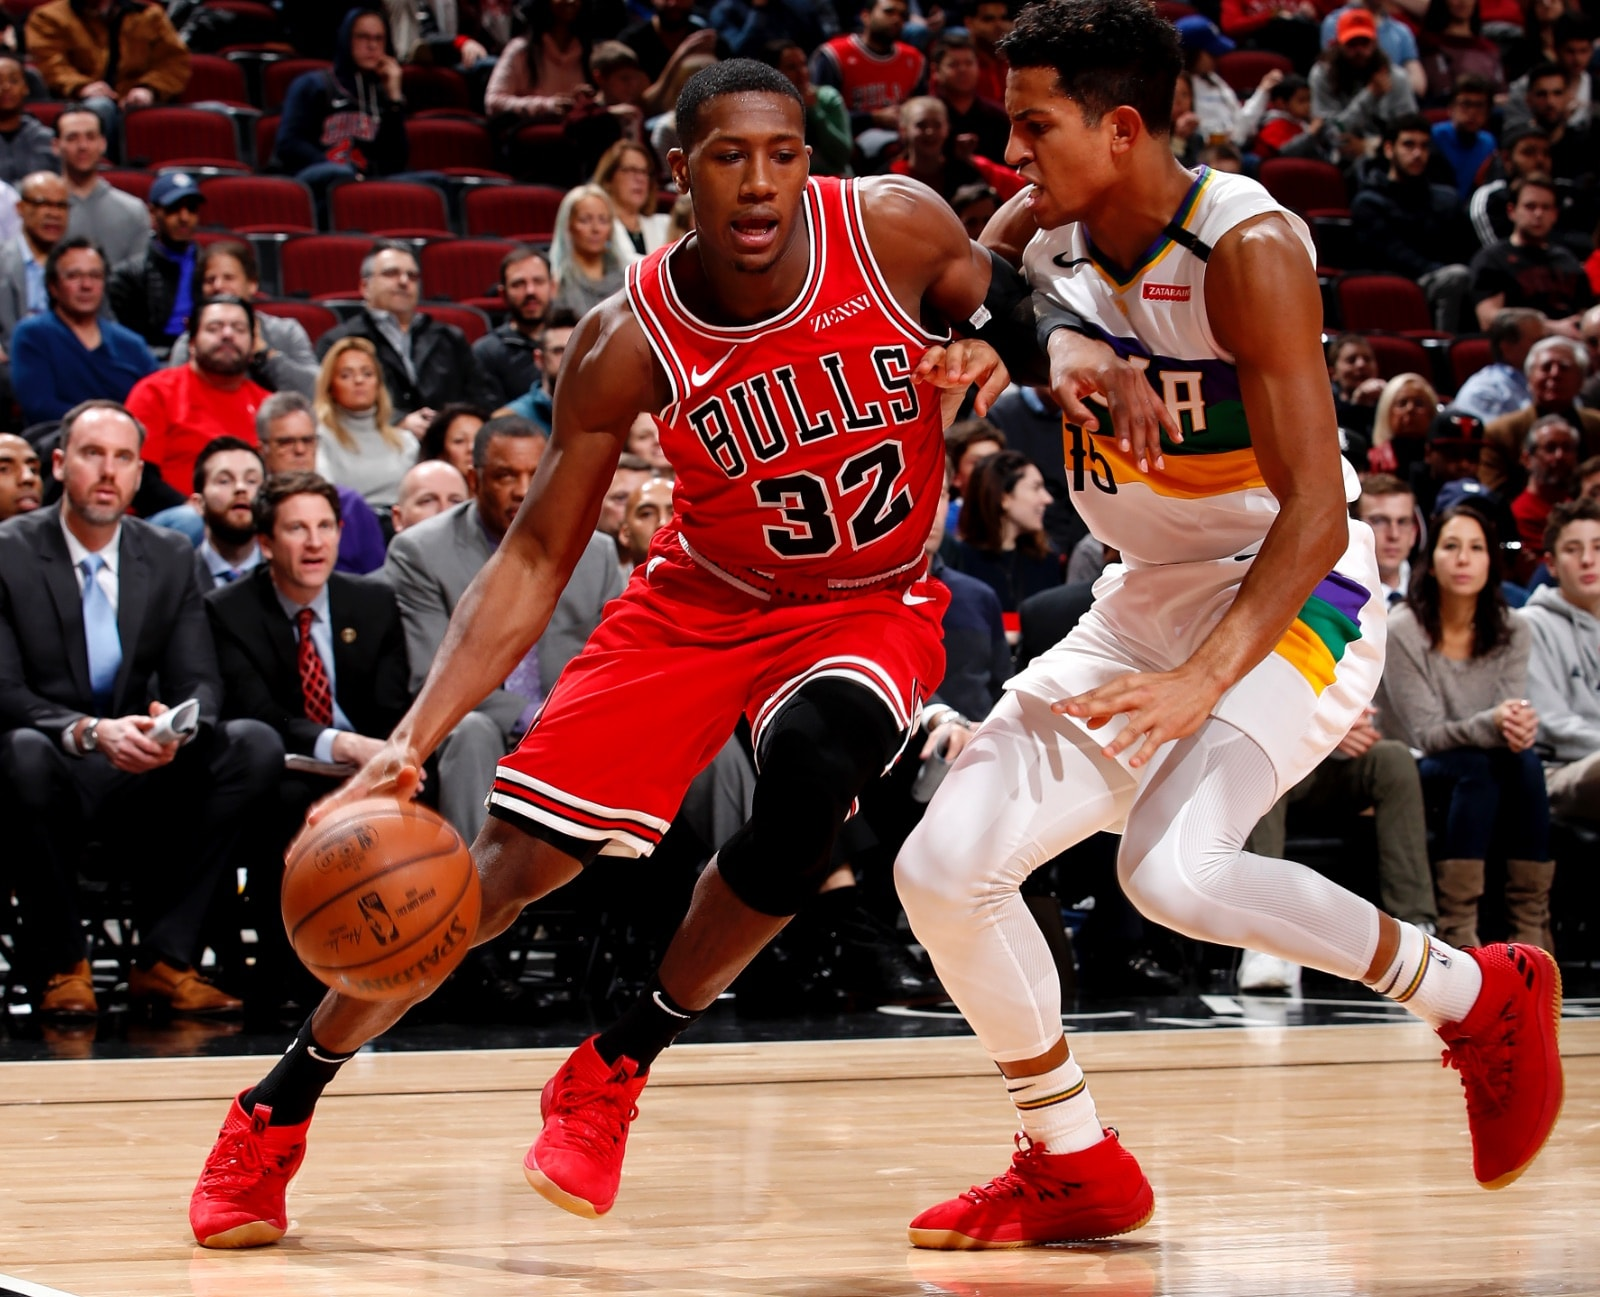 Kris Dunn drives to the basket